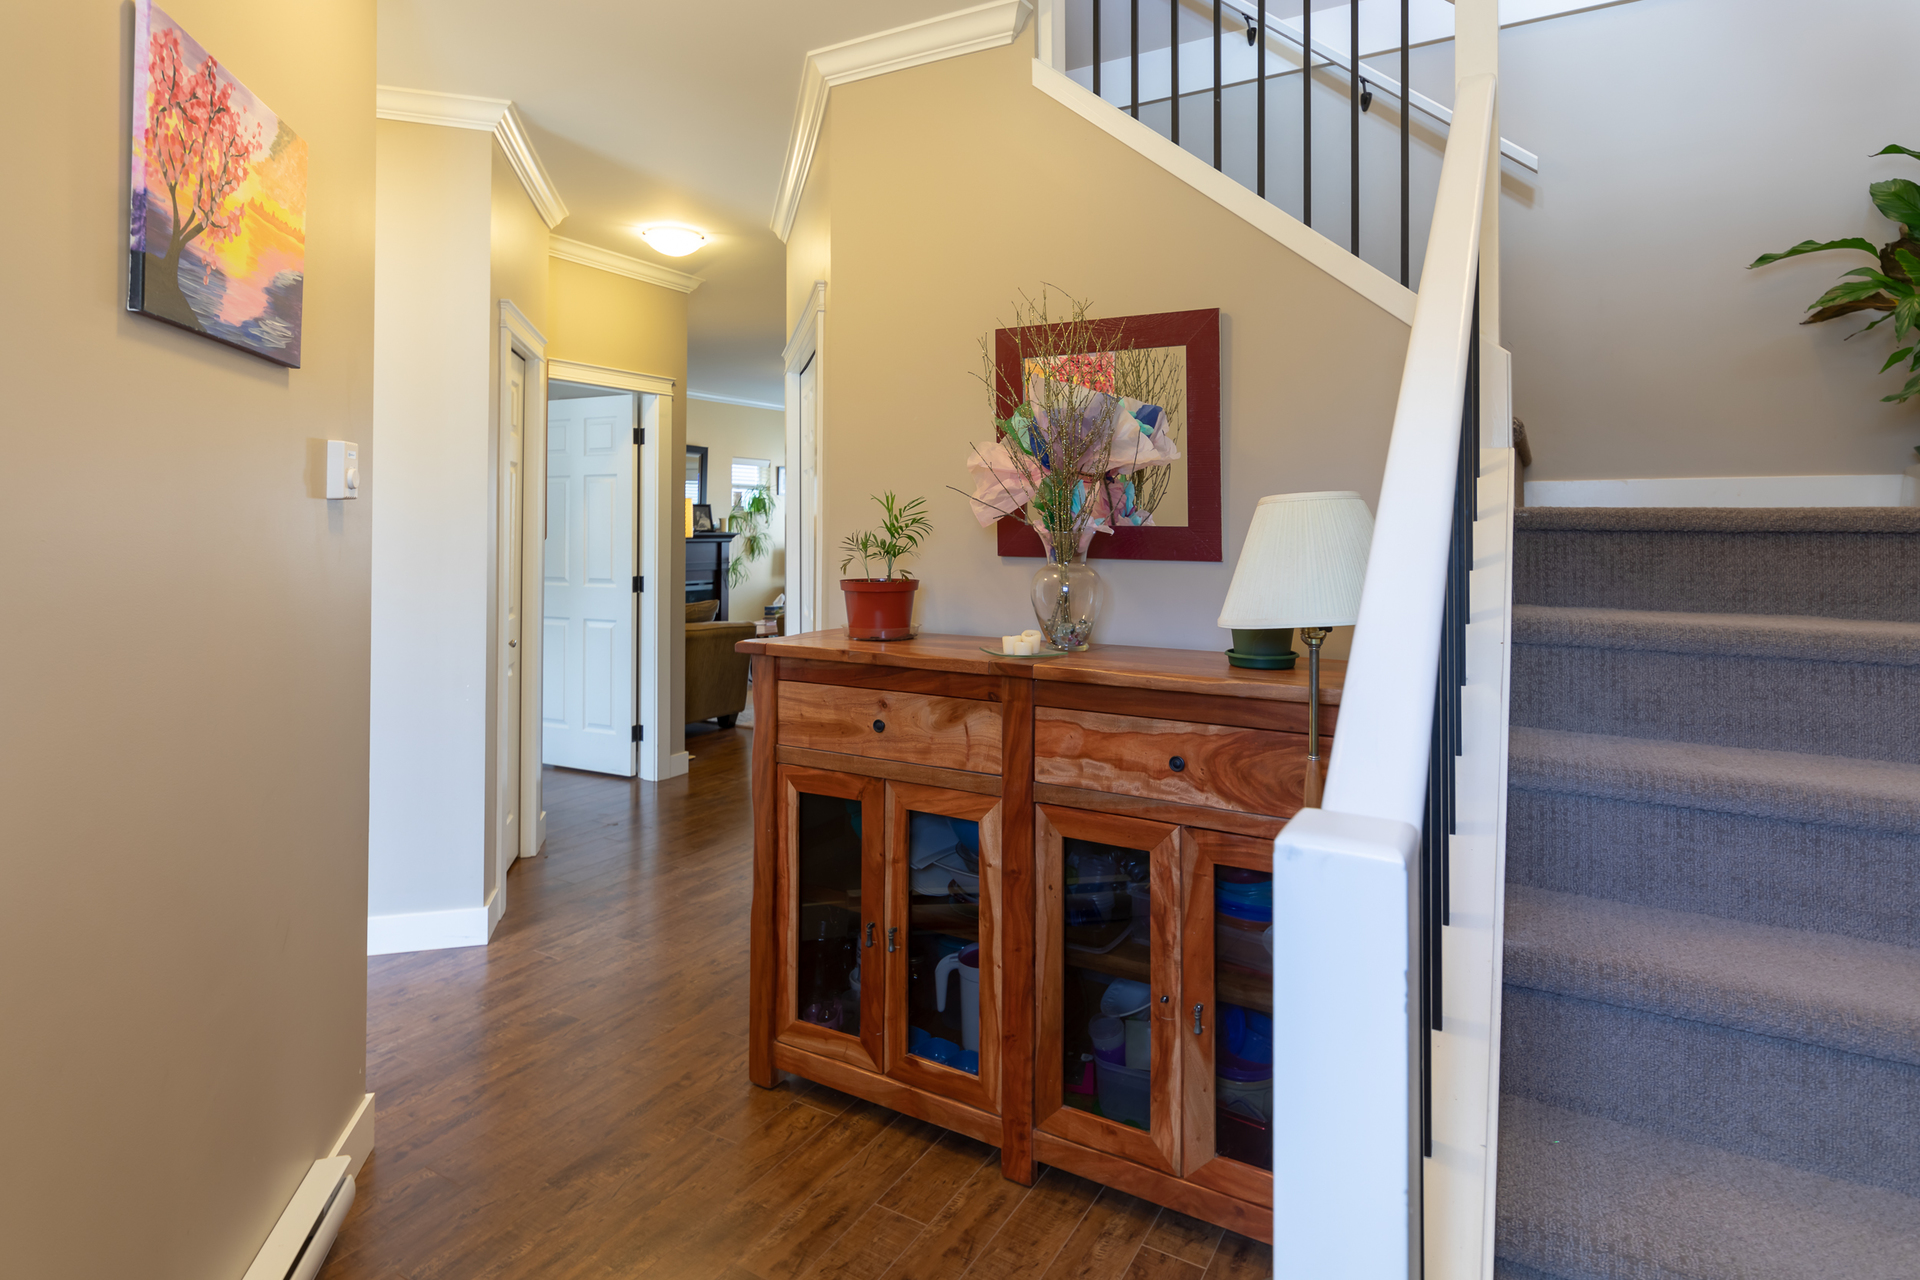 Entryway & Staircase at 3288 Merlin Road, Langford Langford, Vancouver Island